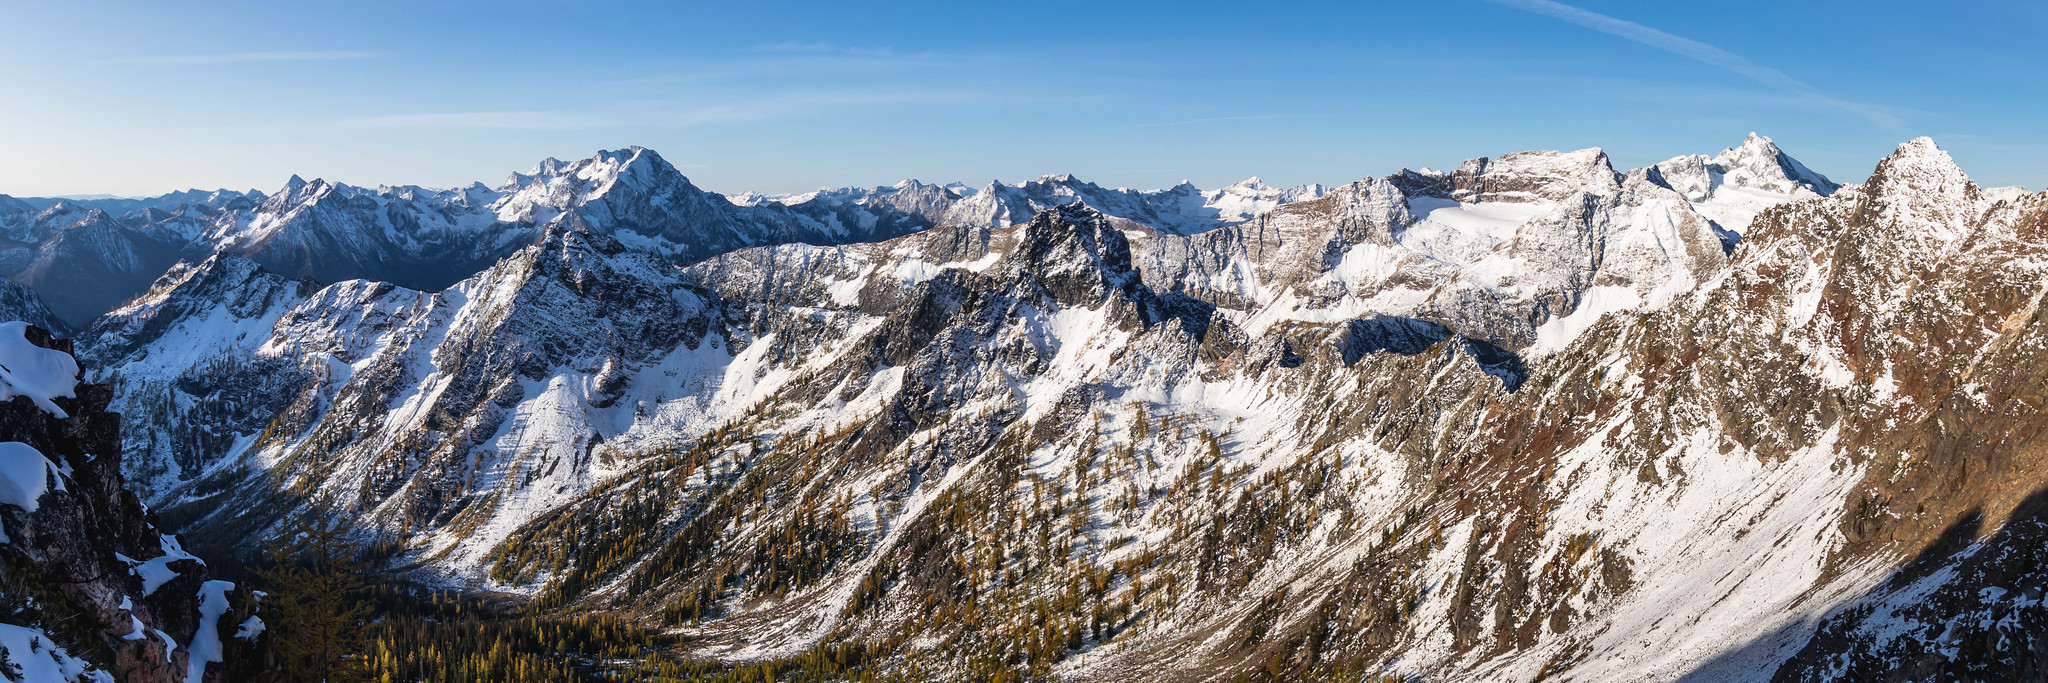 Fourth of July Basin panoramic view